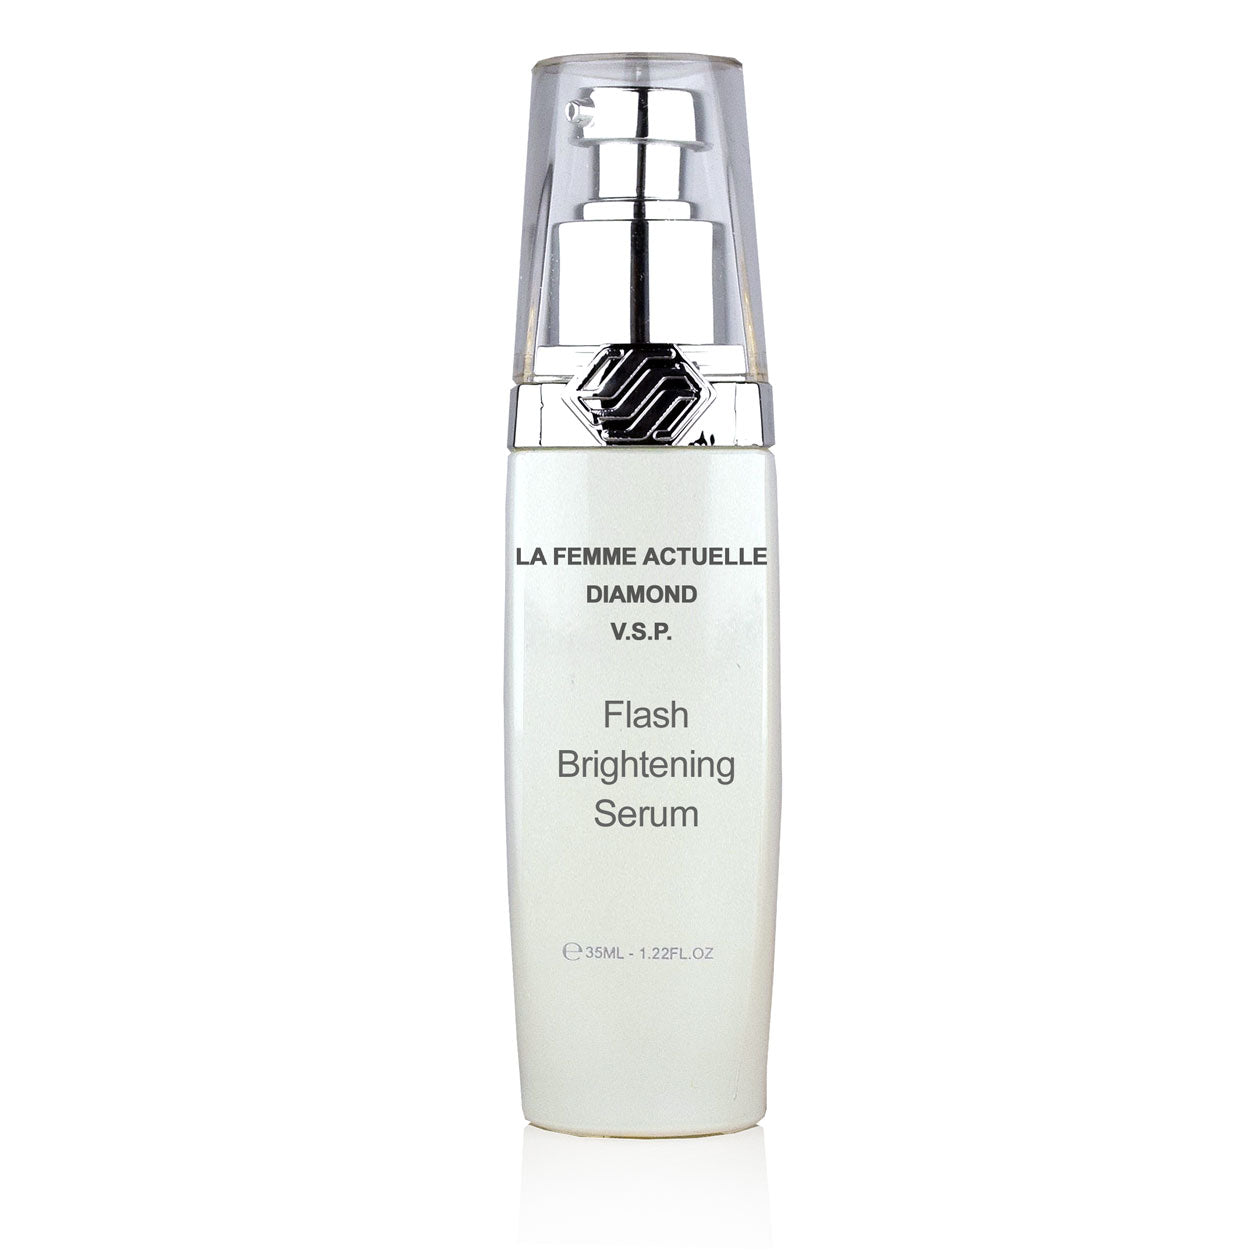 La Femme Diamond Flash Brightening Serum